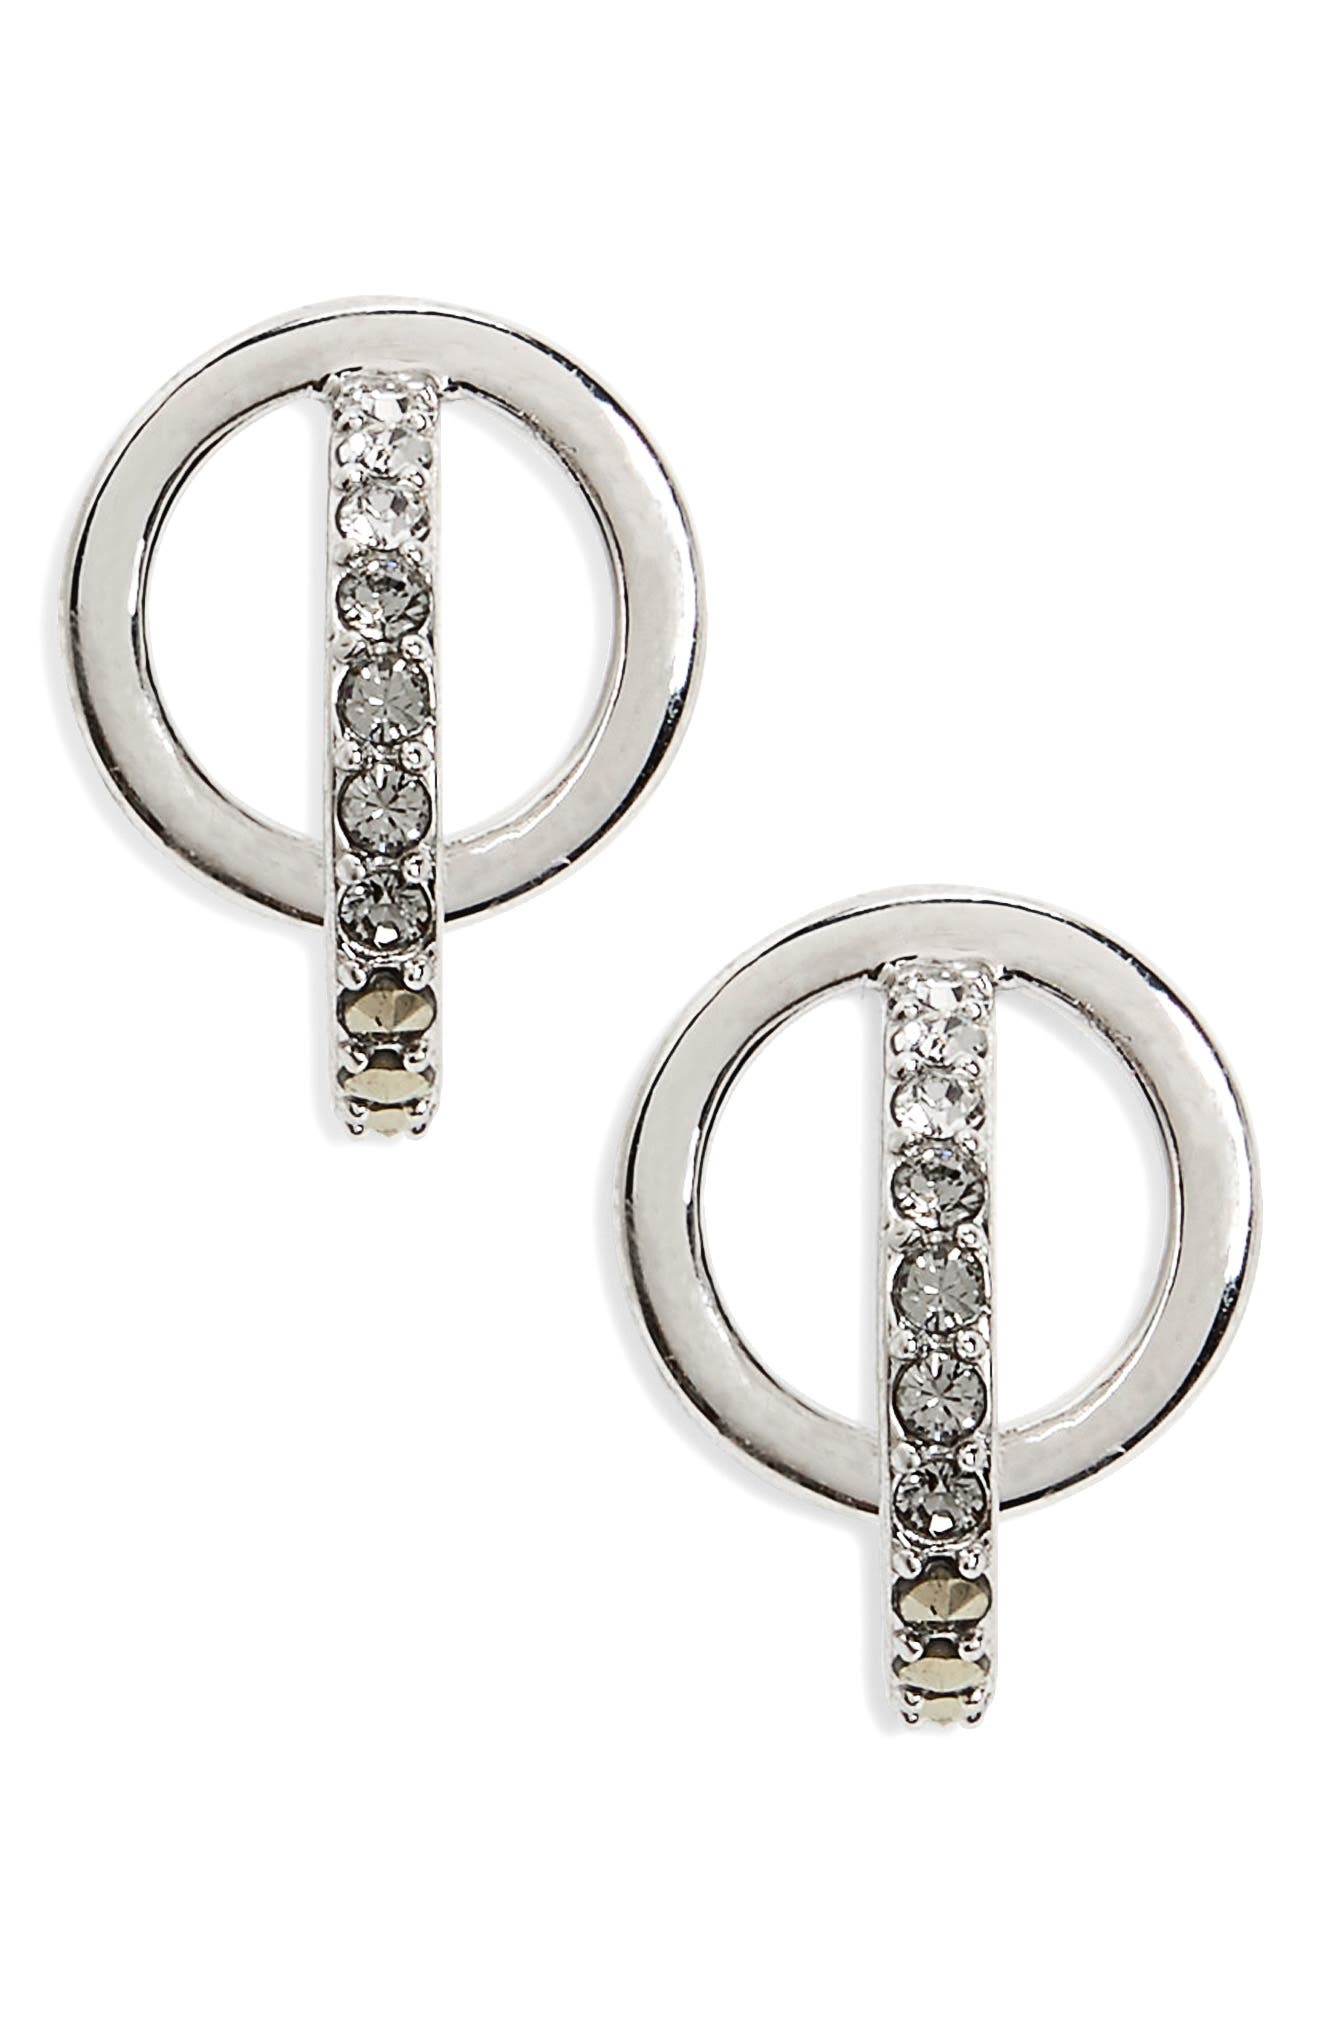 Judith Jack Silver Sparkle Circle Stud Earrings